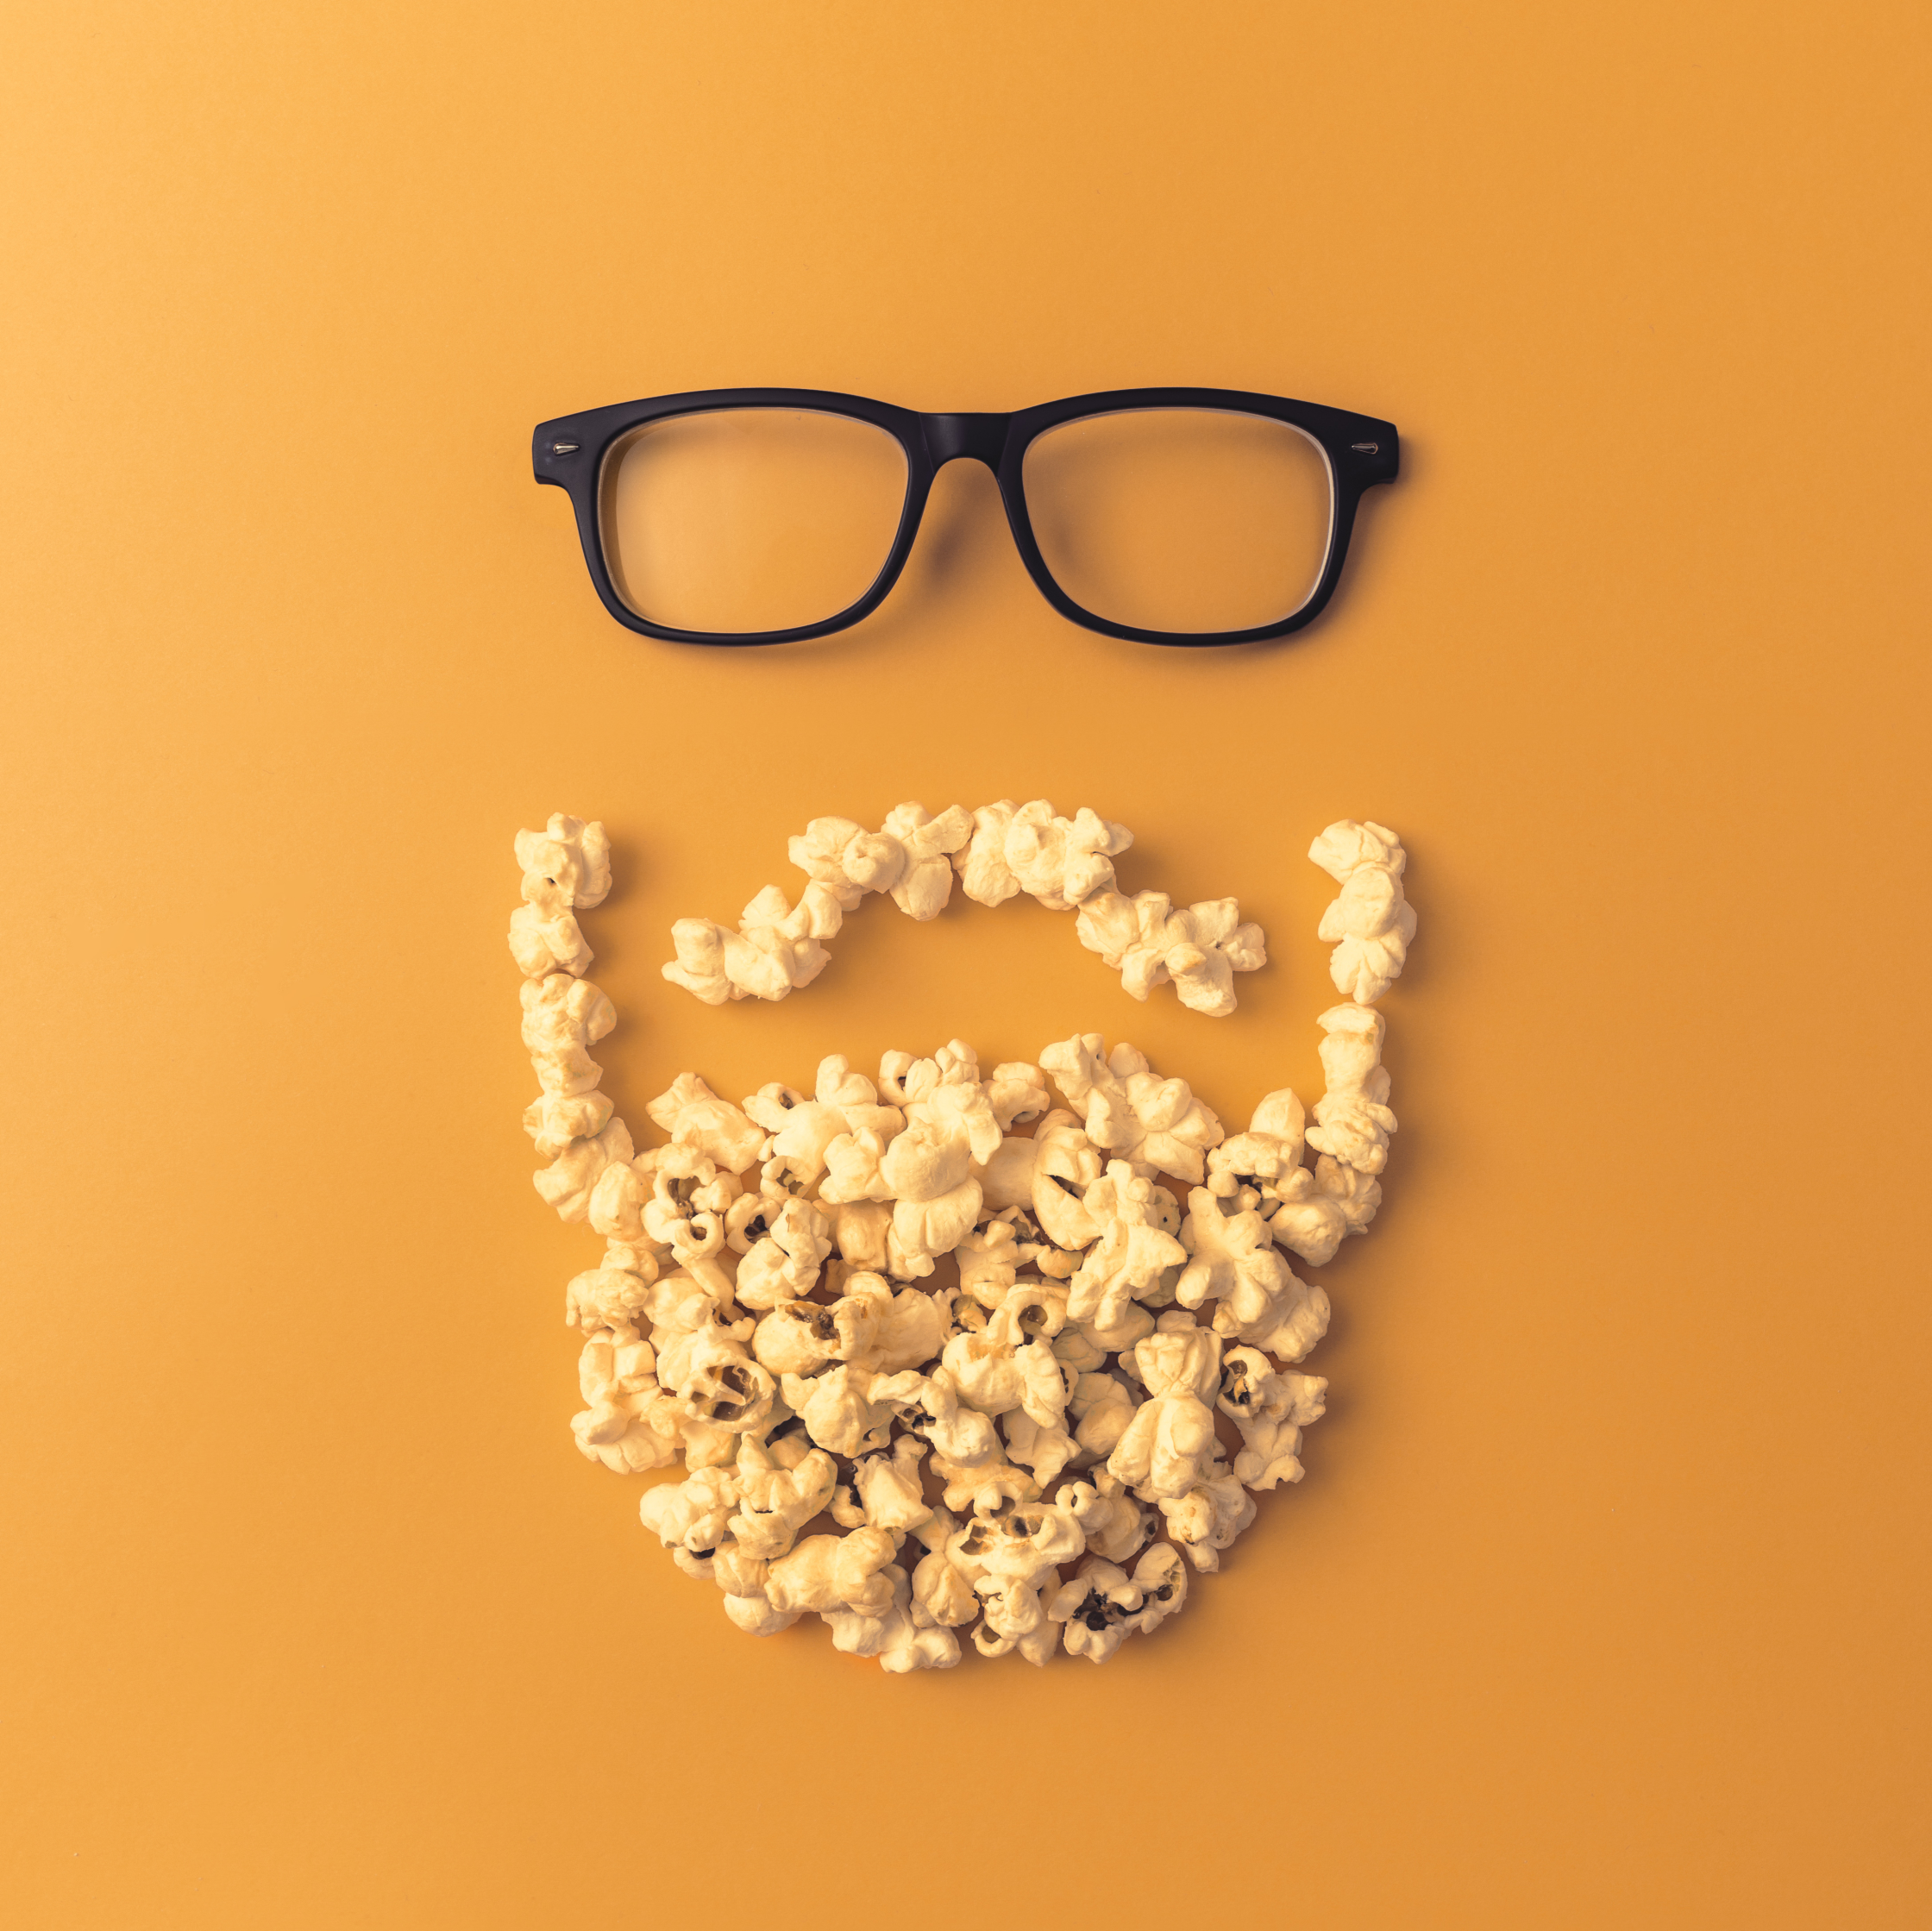 That movie beard - Domenic Bahmann.jpg